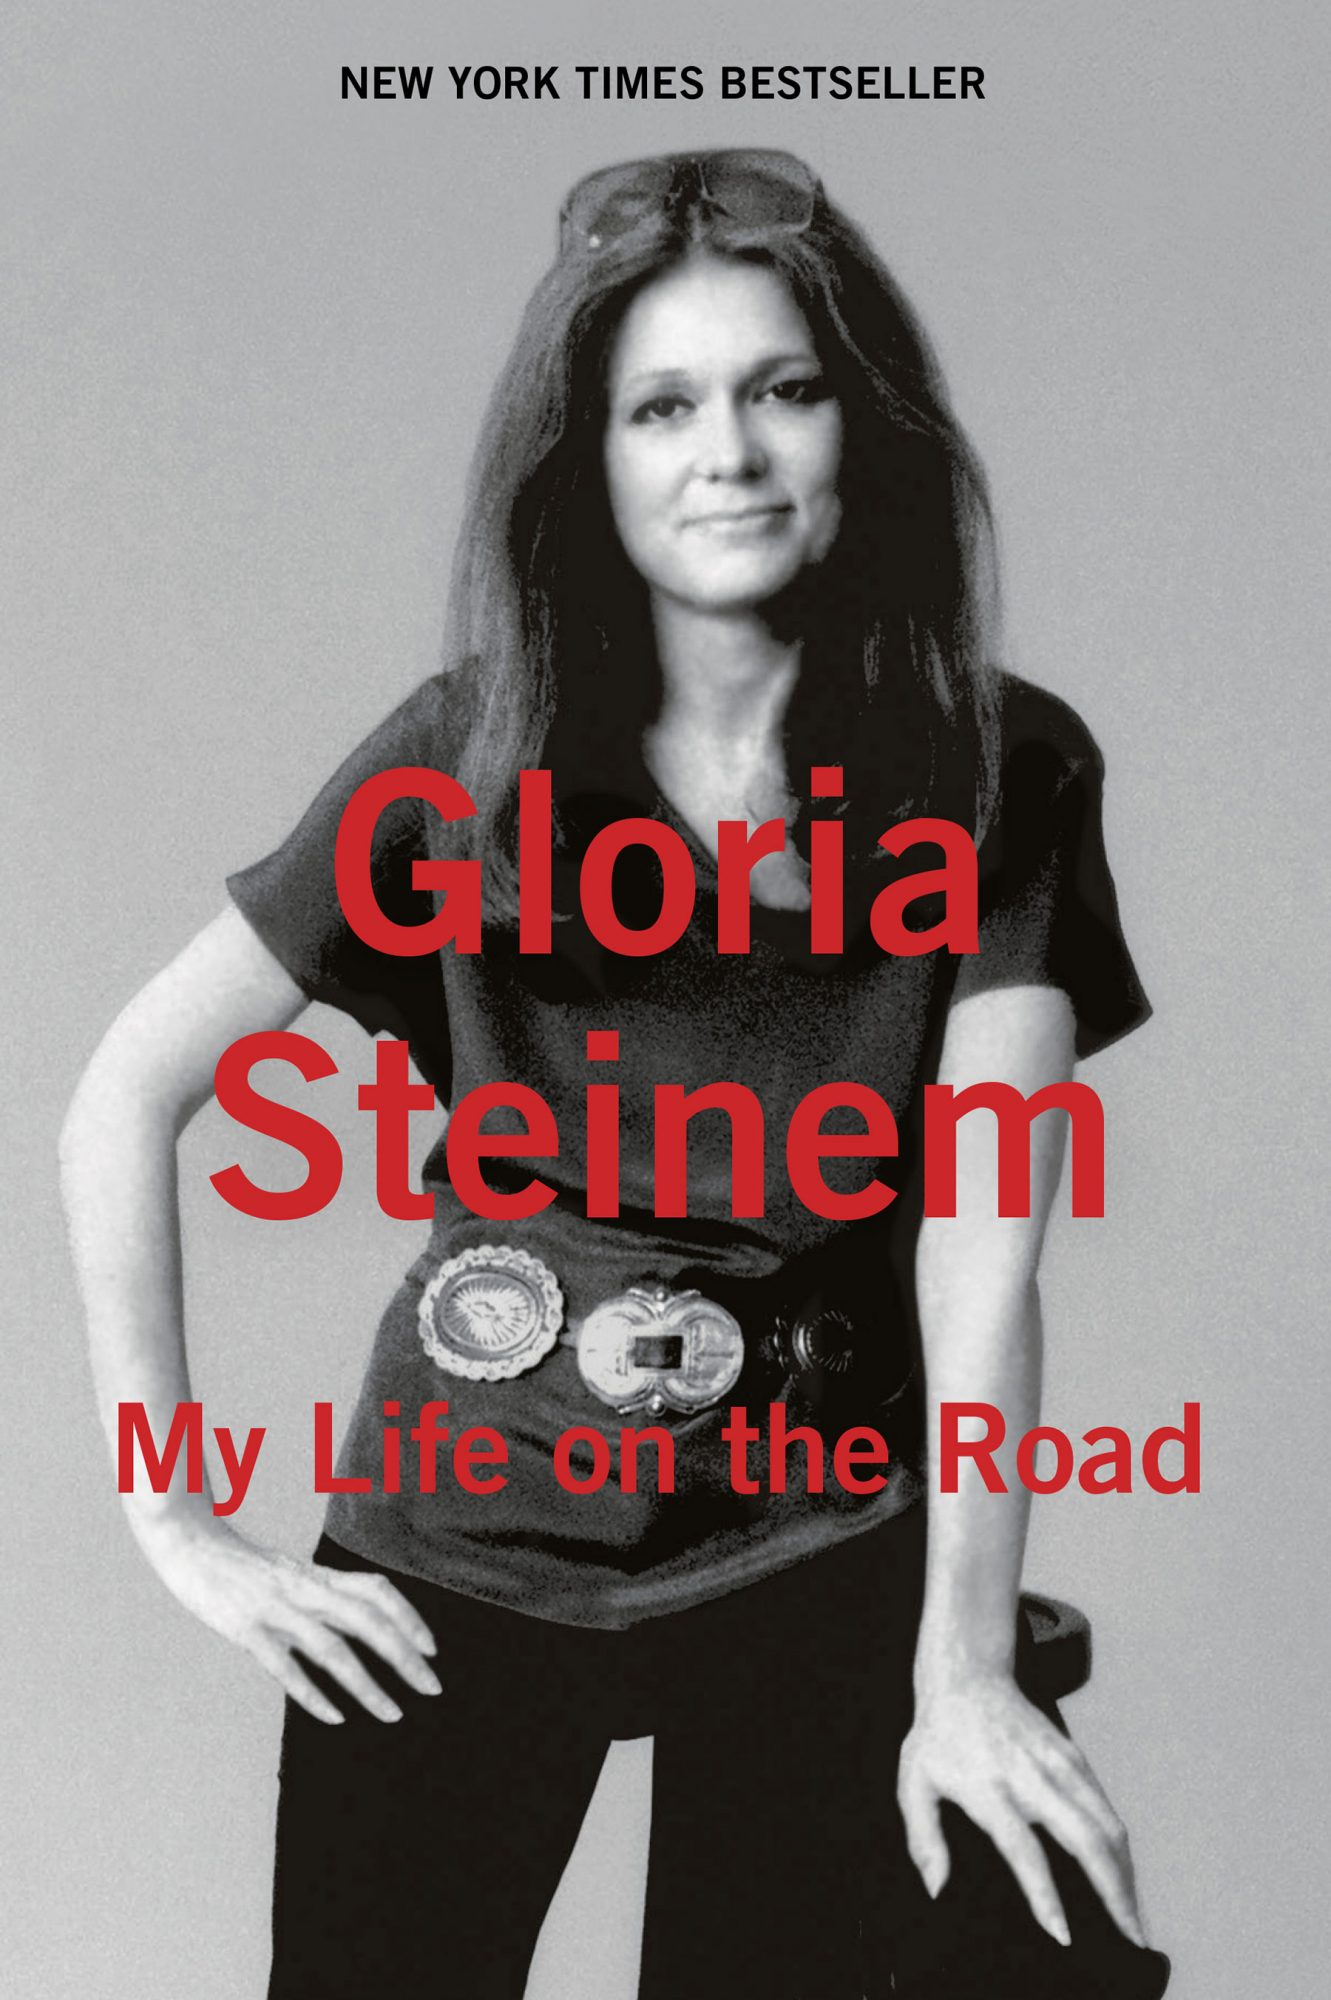 My Life on the Road - paperback (10/27/15)by Gloria Steinem